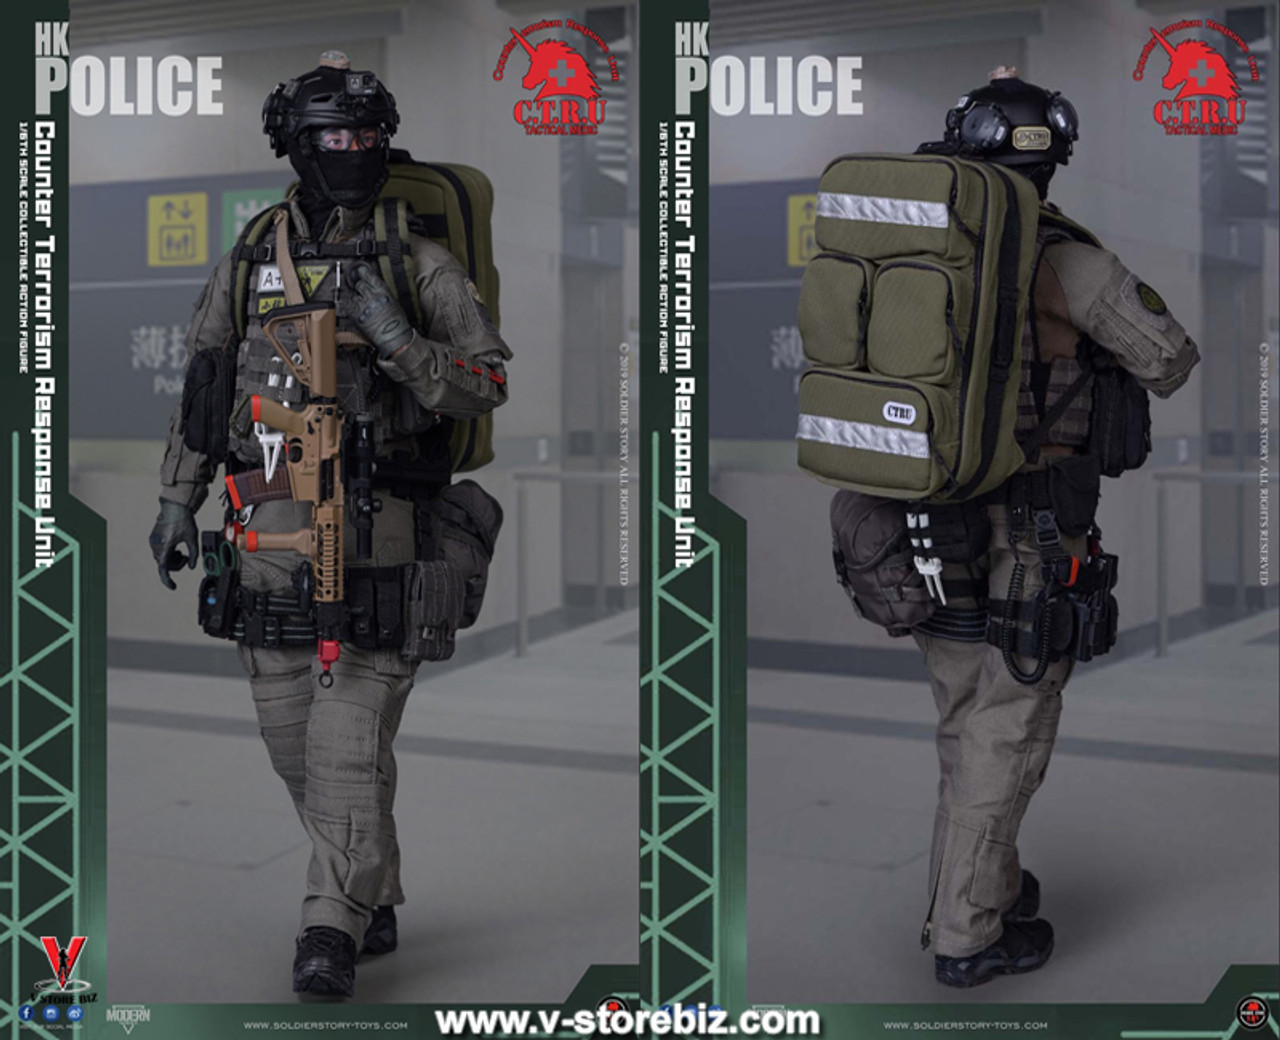 Soldier Story SS115 1//6 HK Police Anti-terrorism Special Service Team Figure Toy